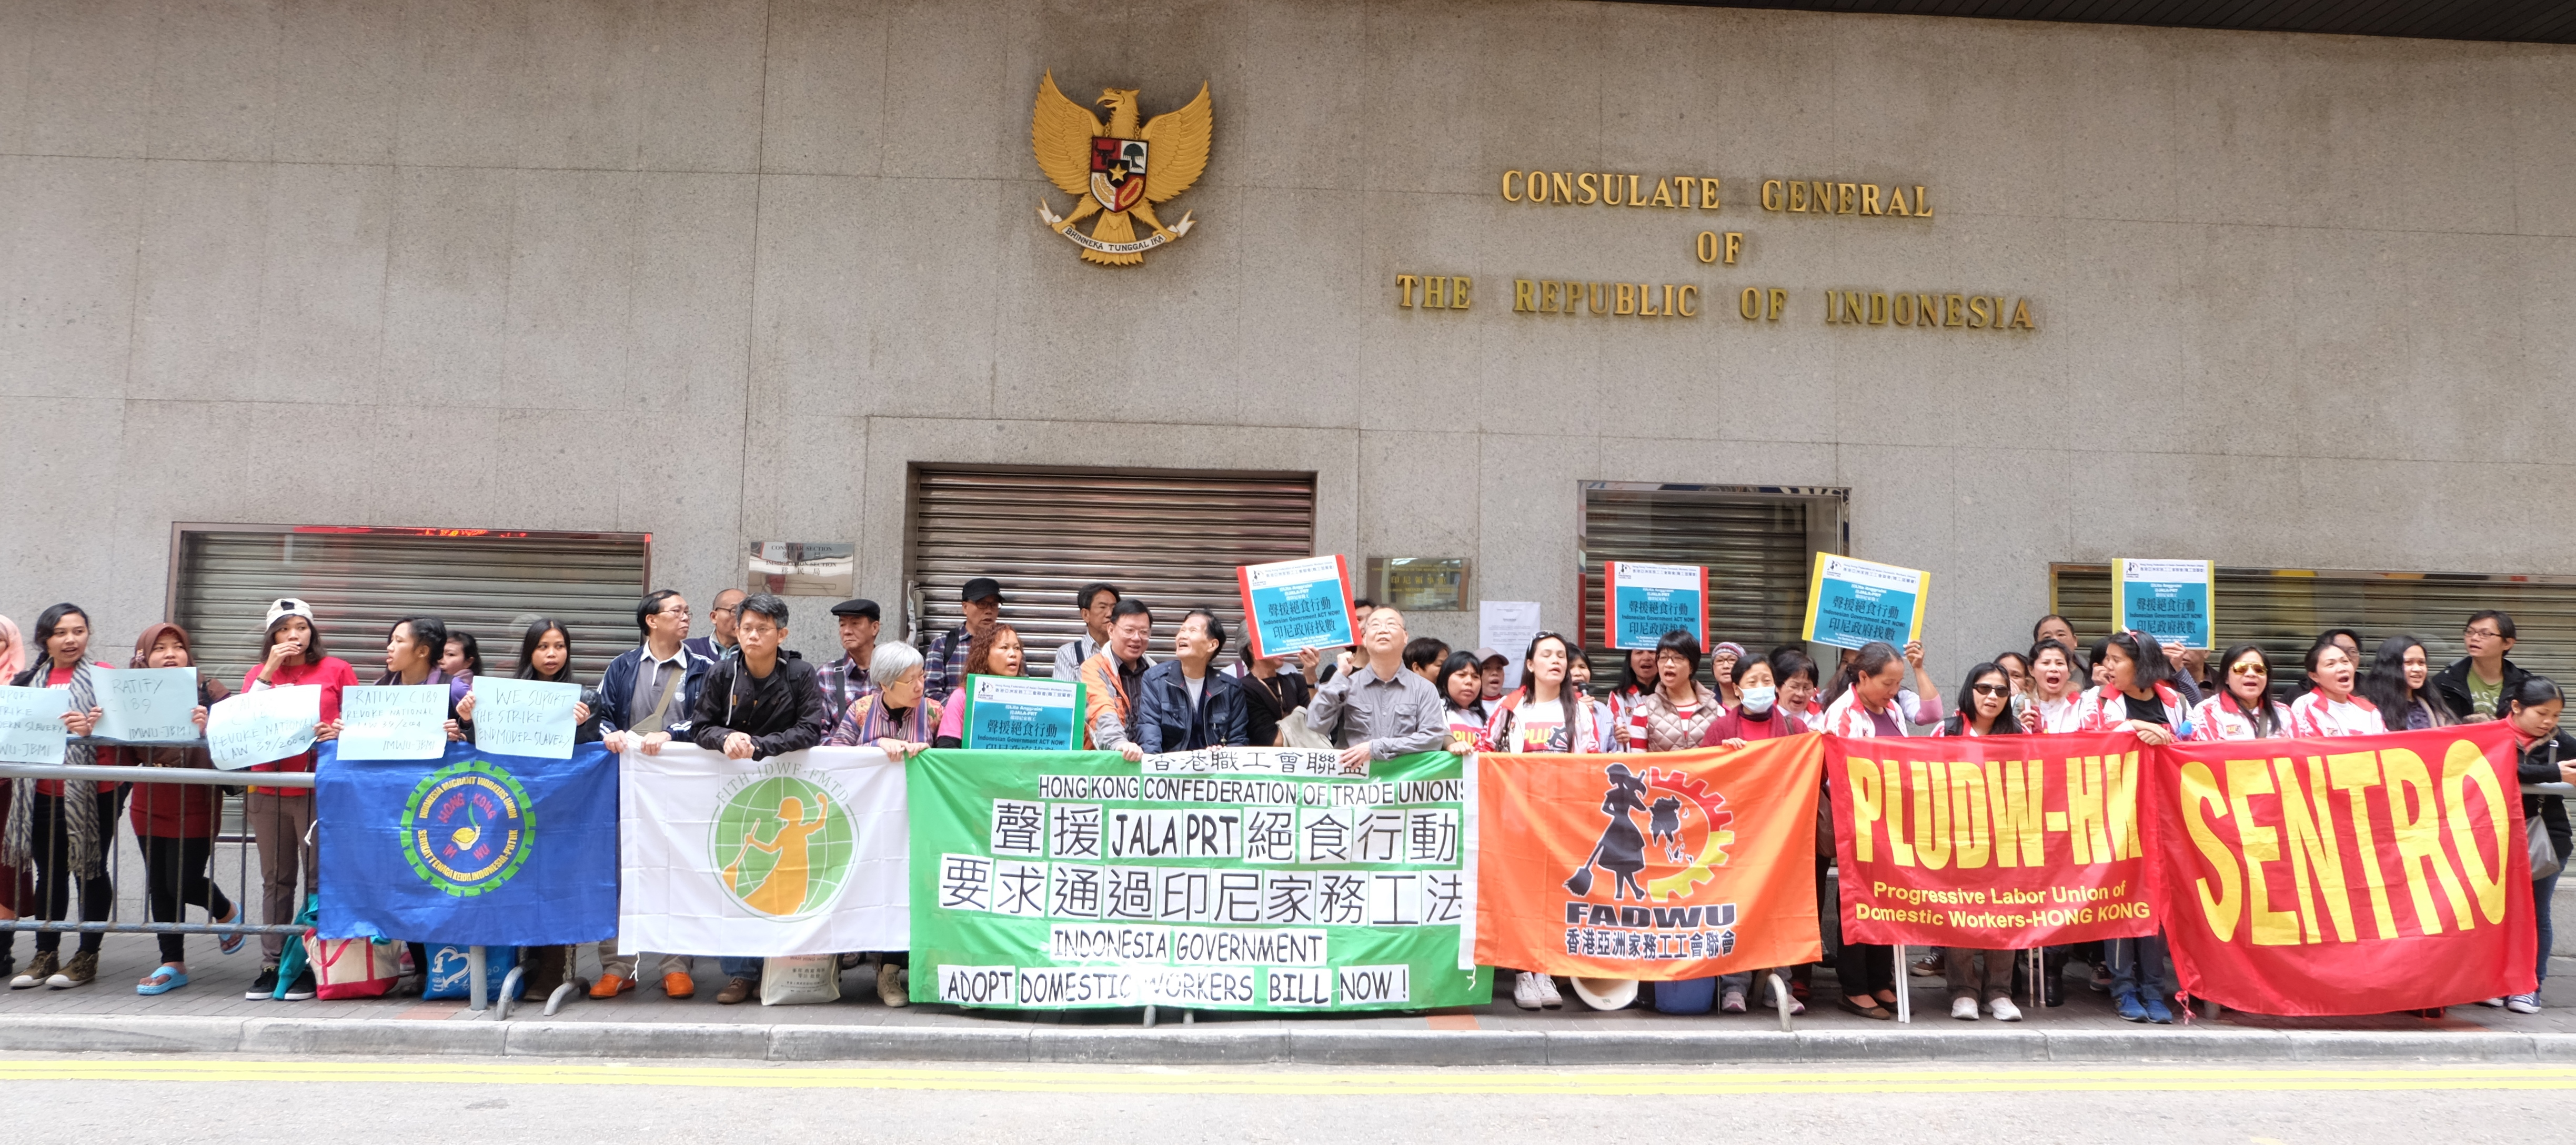 Solidarity Support from HOng KOng to Indonesia for Jala PRT's actions for domestic workers bill and C189